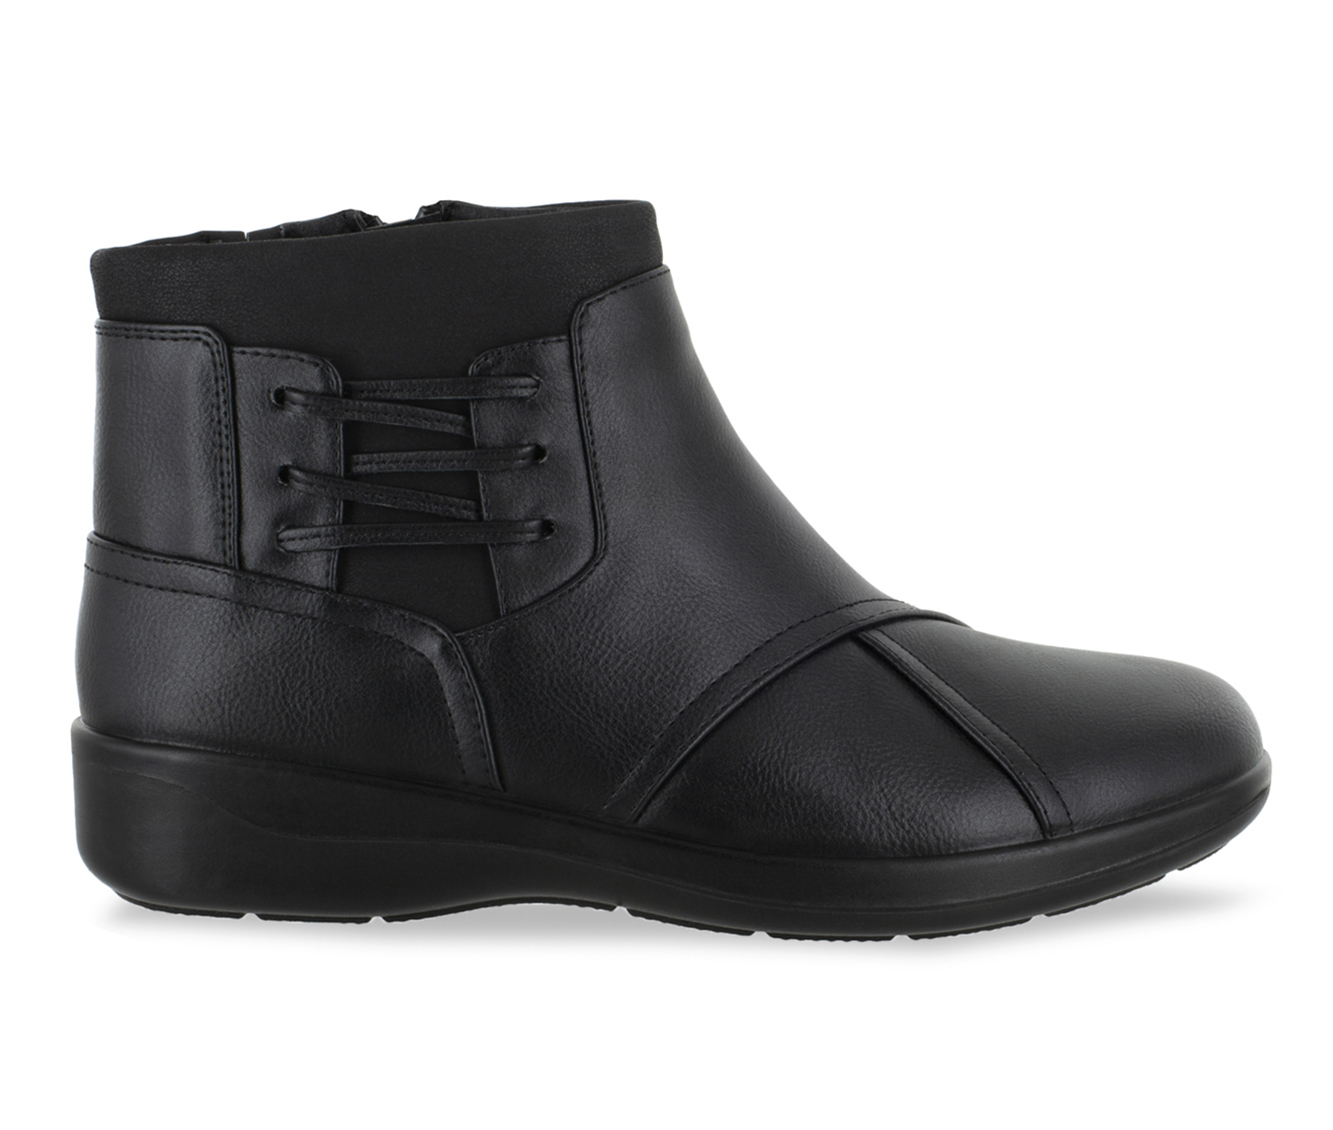 Easy Street Guild Women's Boots (Black - Faux Leather)